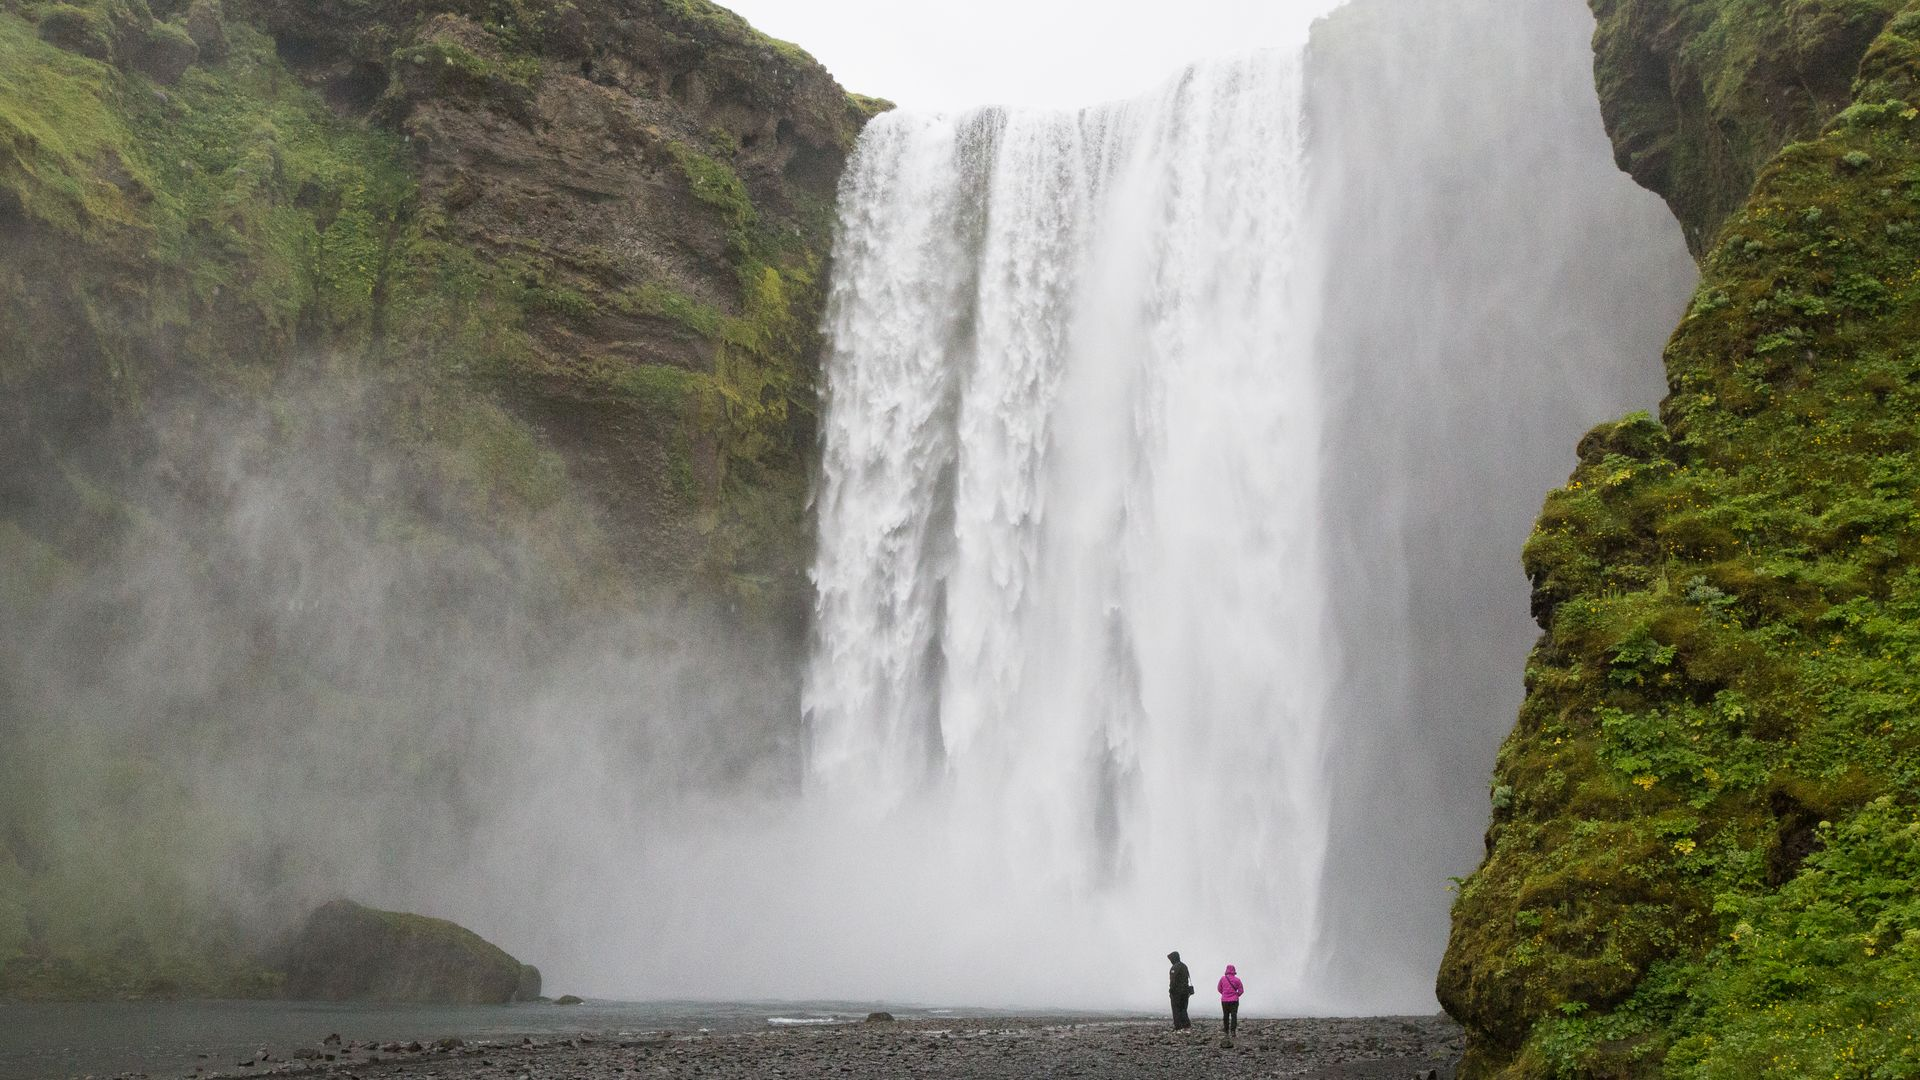 The beautiful Skógafoss waterfall in South Iceland